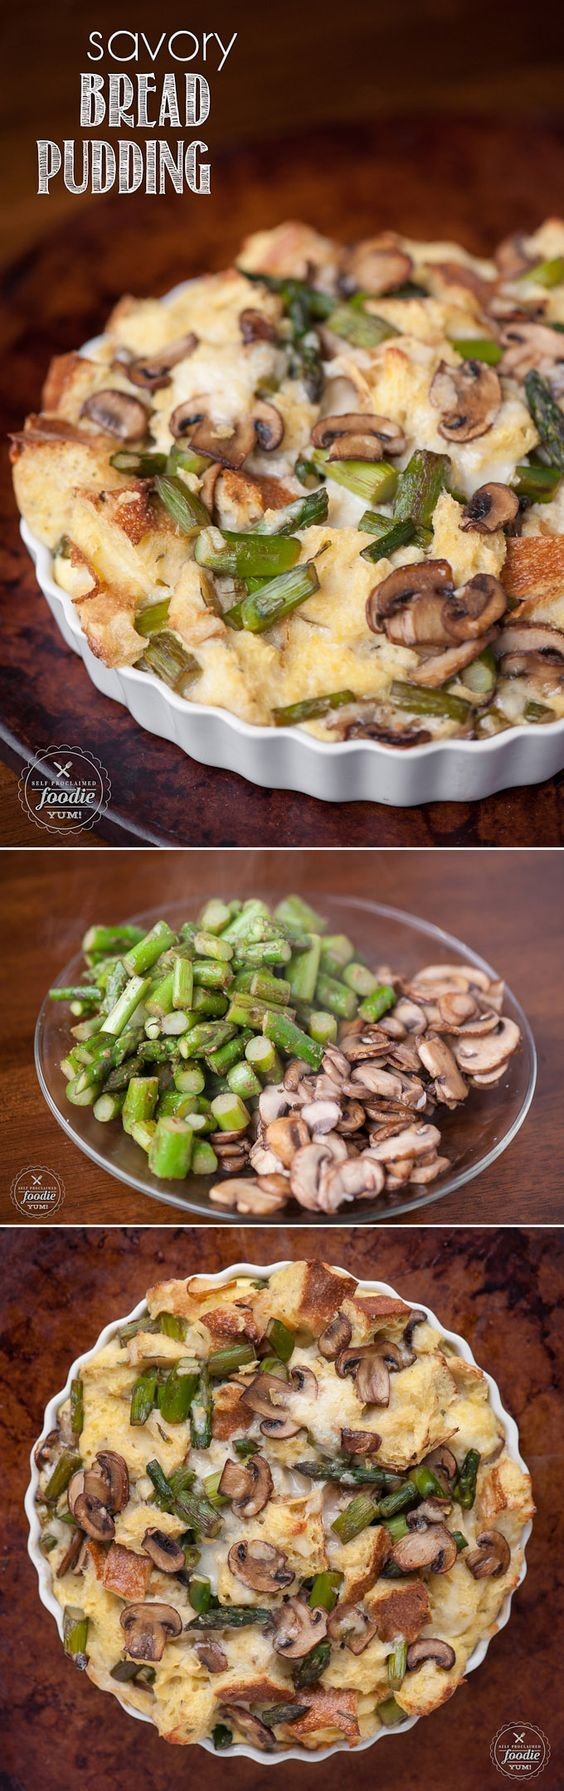 This Savory Bread Pudding with mushrooms, asparagus, and your favorite cheese is a delicious make ahead breakfast perfect for entertaining!